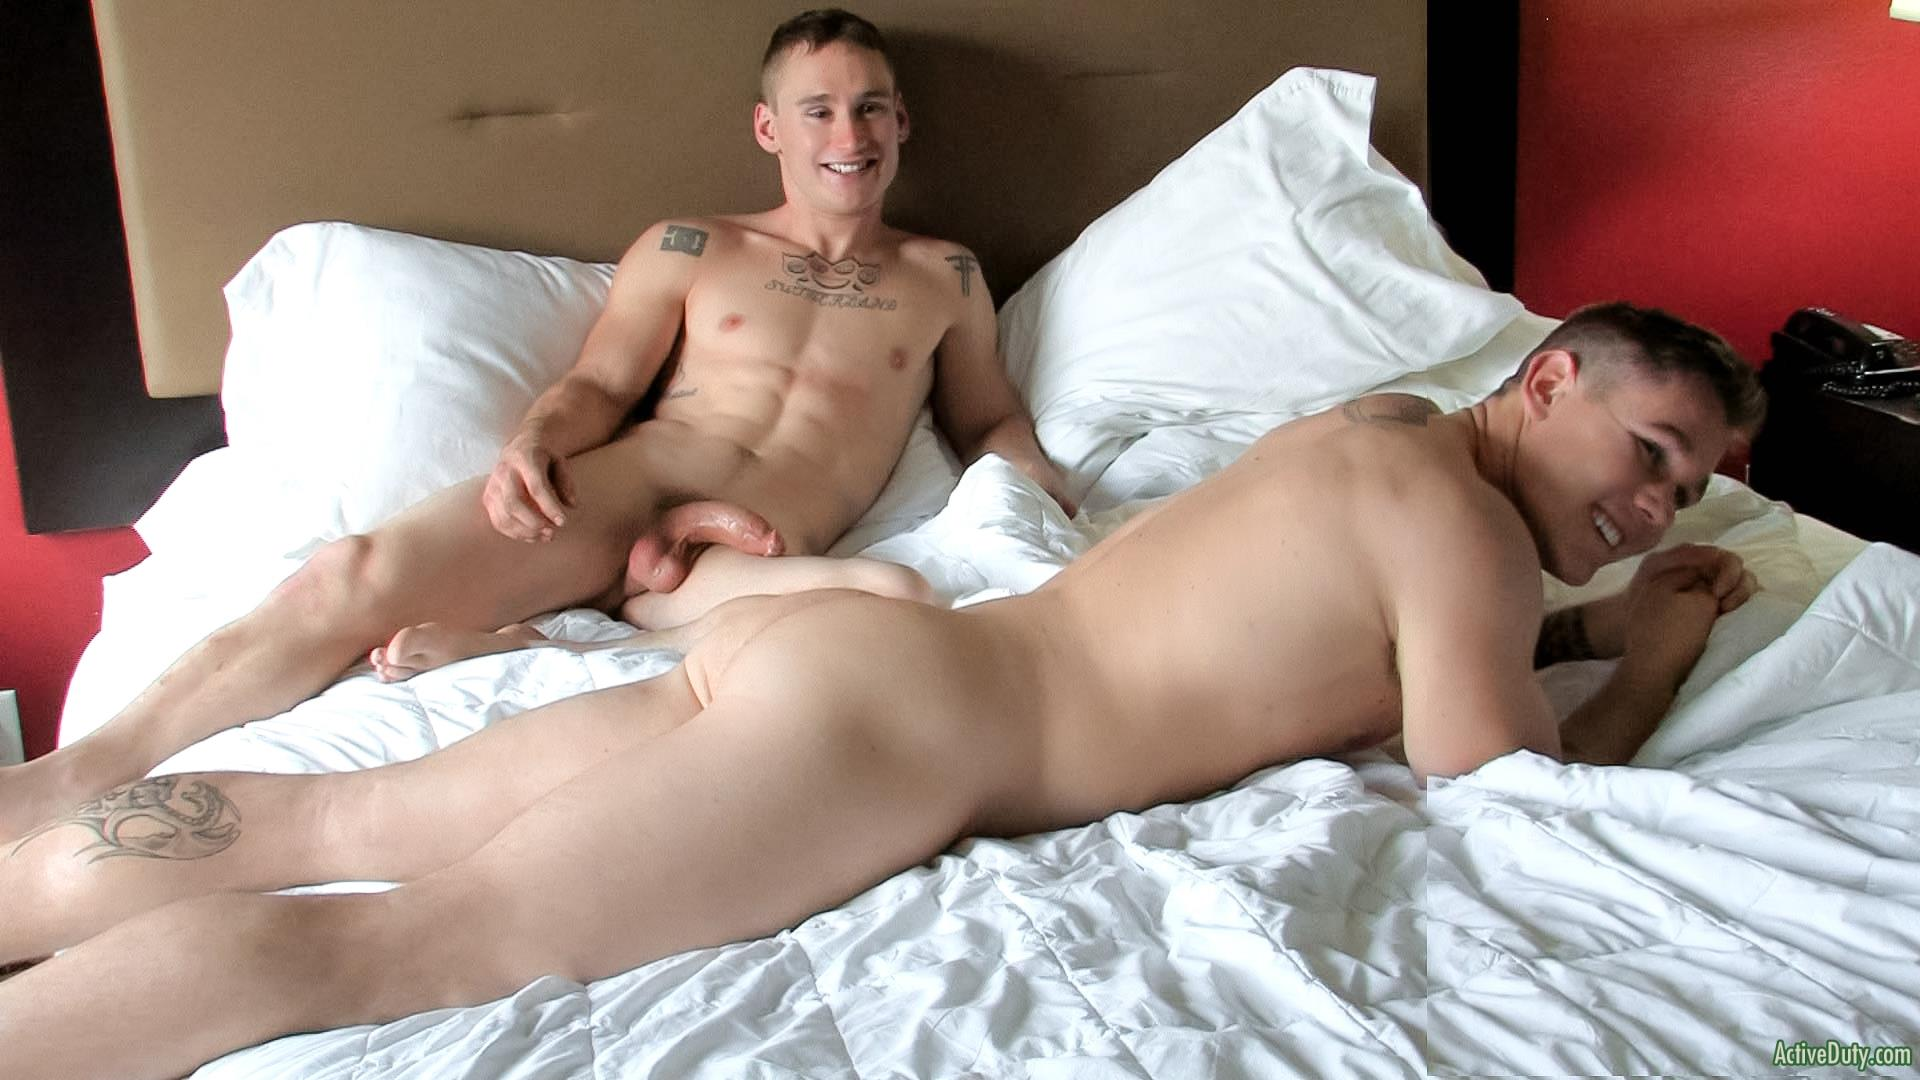 Active Duty Randy and Tim Straight Army Guys Fucking Muscle Cock Amateur Gay Porn 15